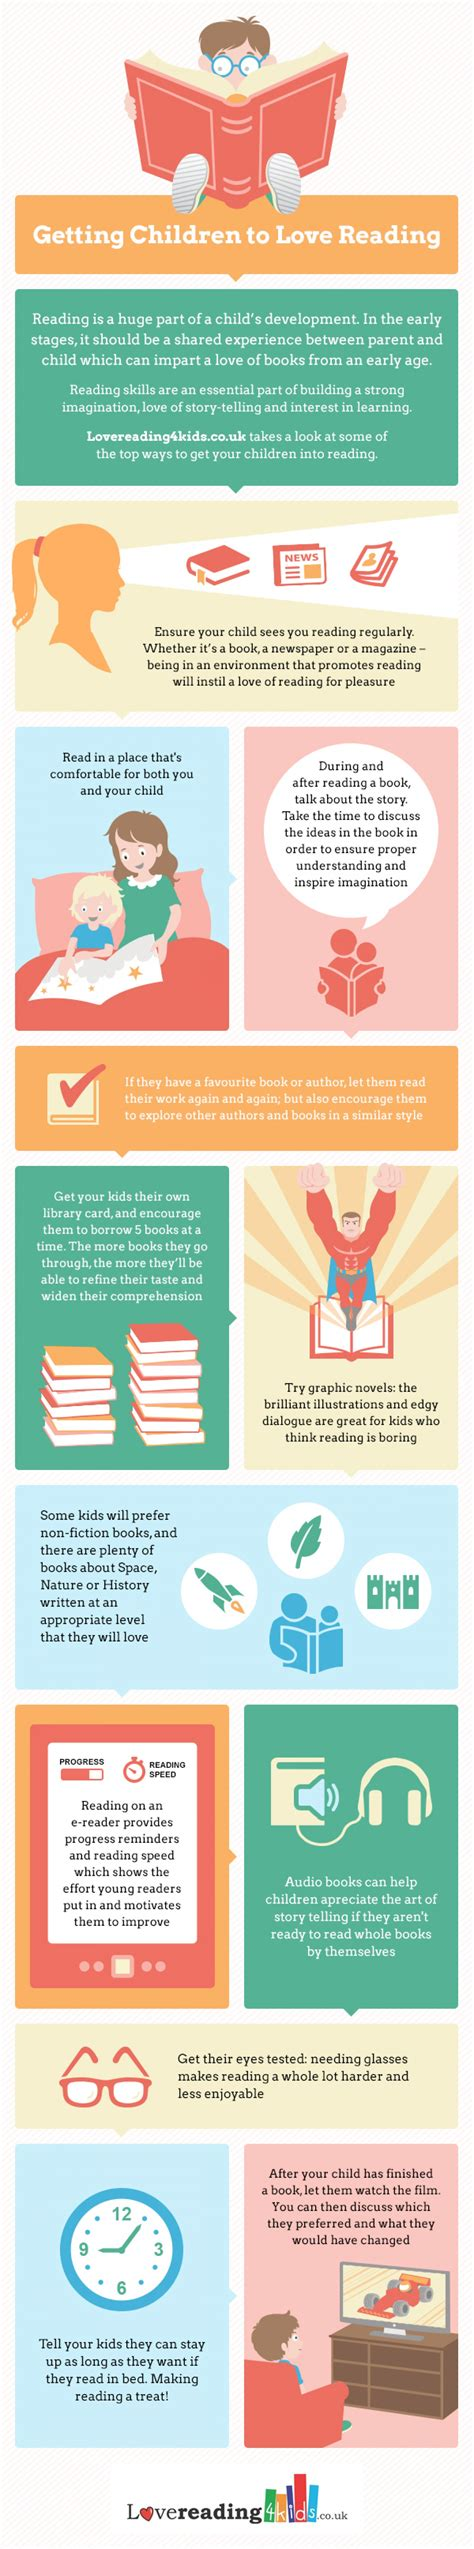 getting books inculcating reading habit in infographics graphs net